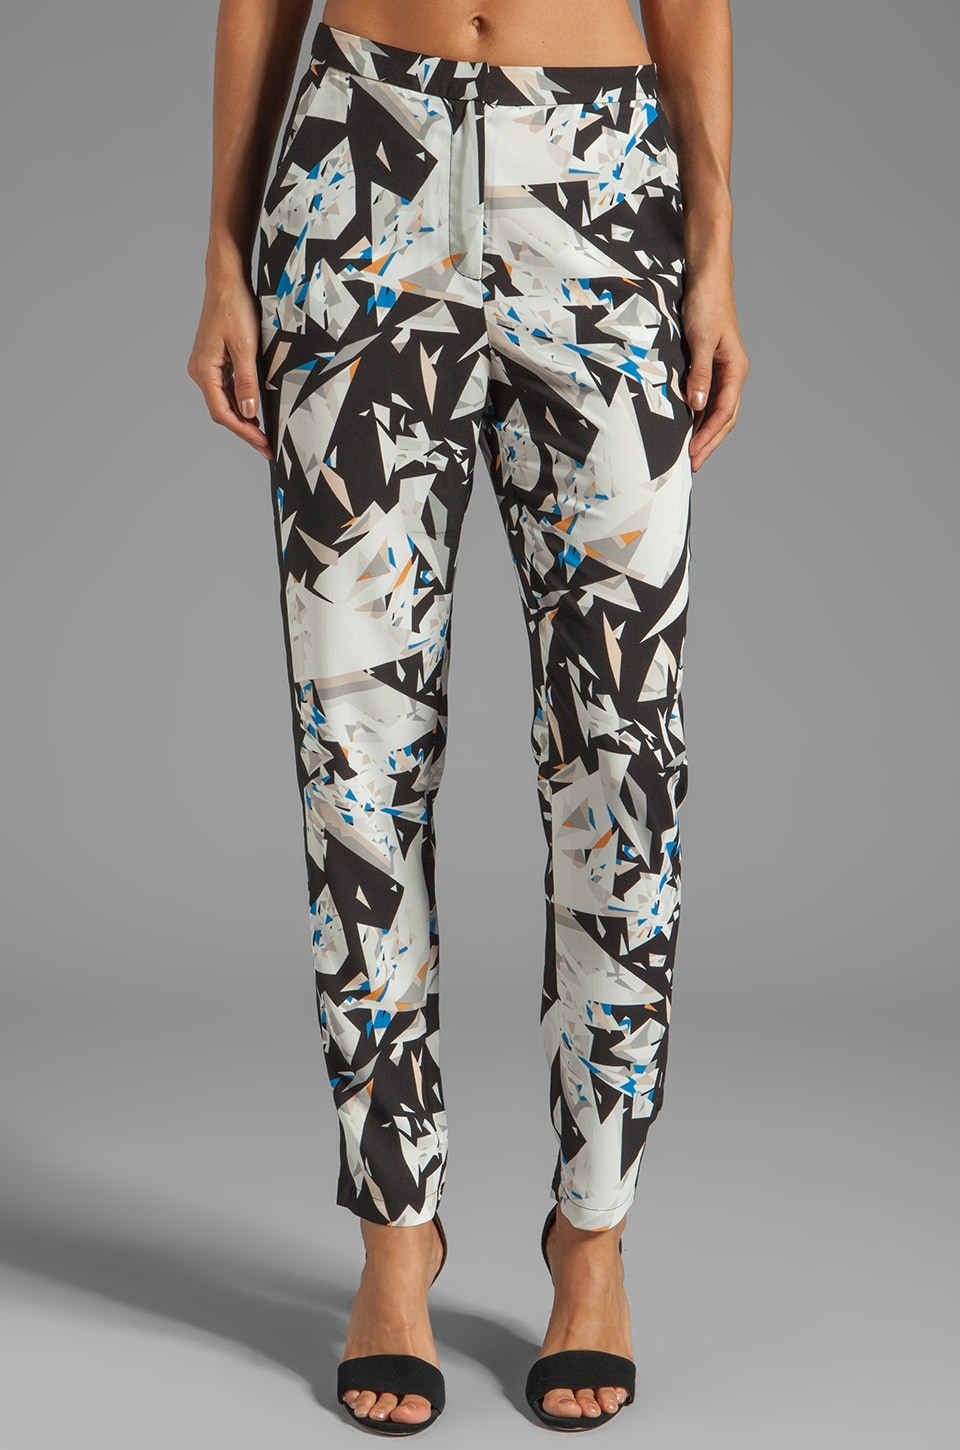 STYLESTALKER Kiss the Glass Pant in Shattered Glass Print